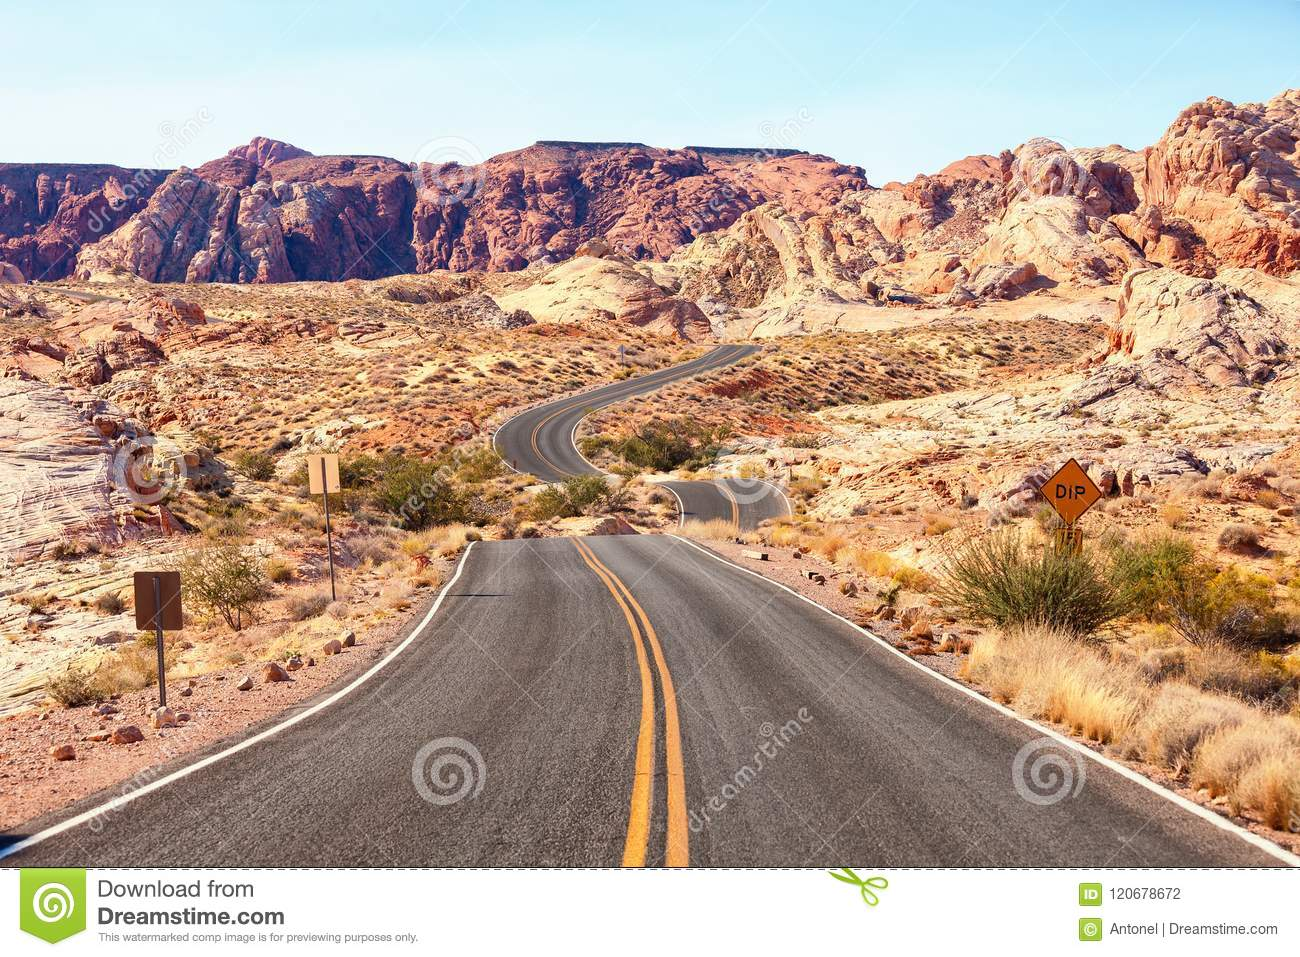 Scenic road in the Valley of Fire State Park, Nevada, United States